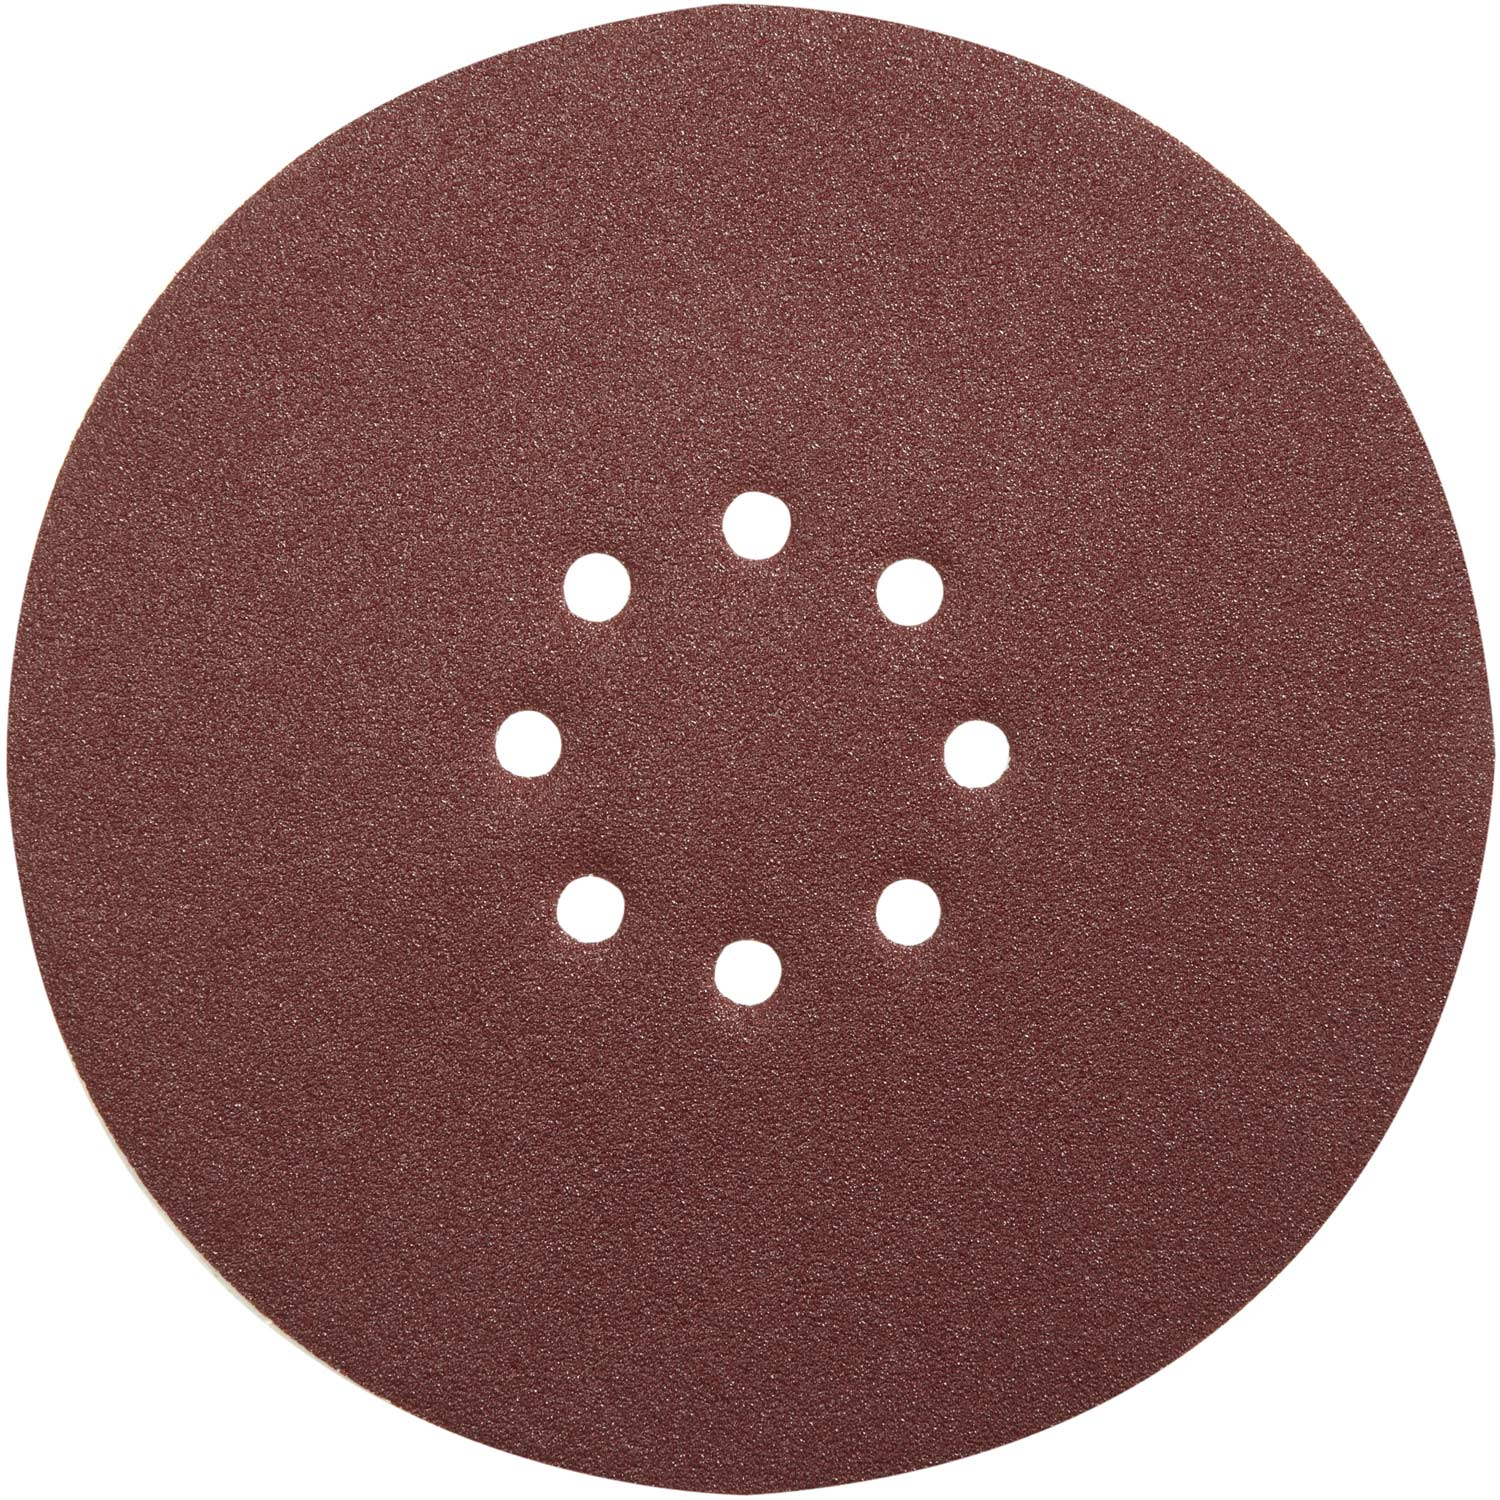 lot de 6 disques abrasifs redstone 230 mm grains 120 leroy merlin. Black Bedroom Furniture Sets. Home Design Ideas